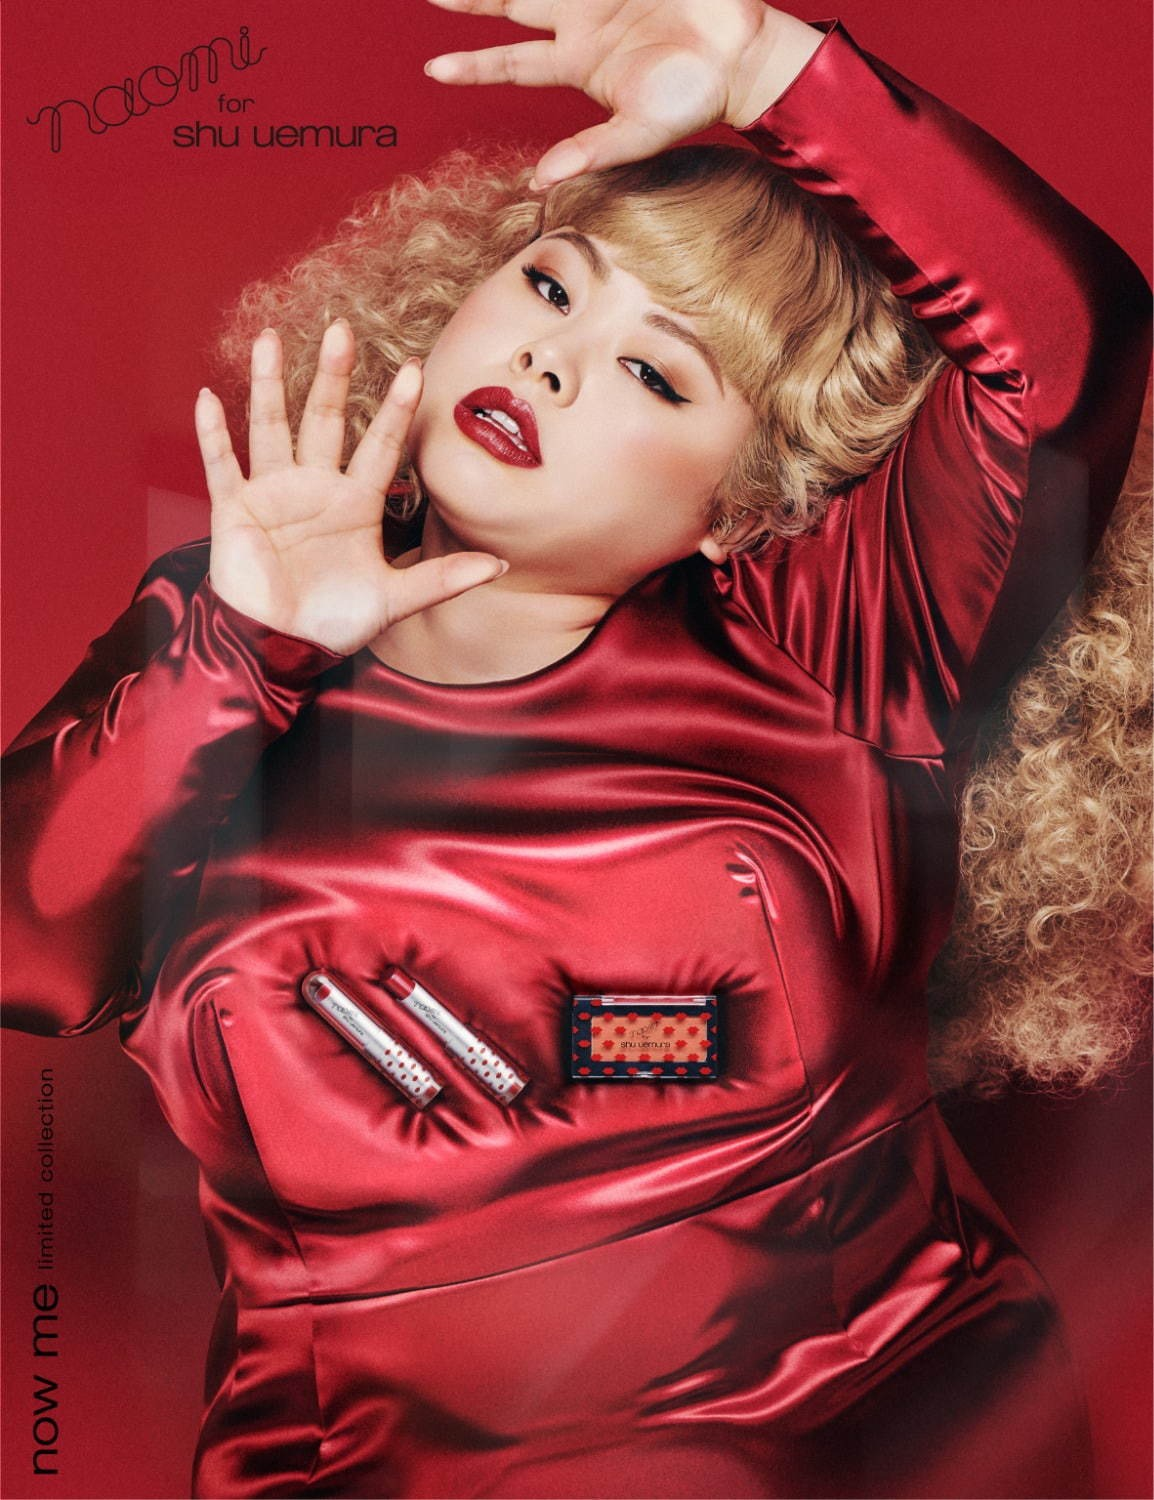 naomi for shu uemura limited collection 2019-07